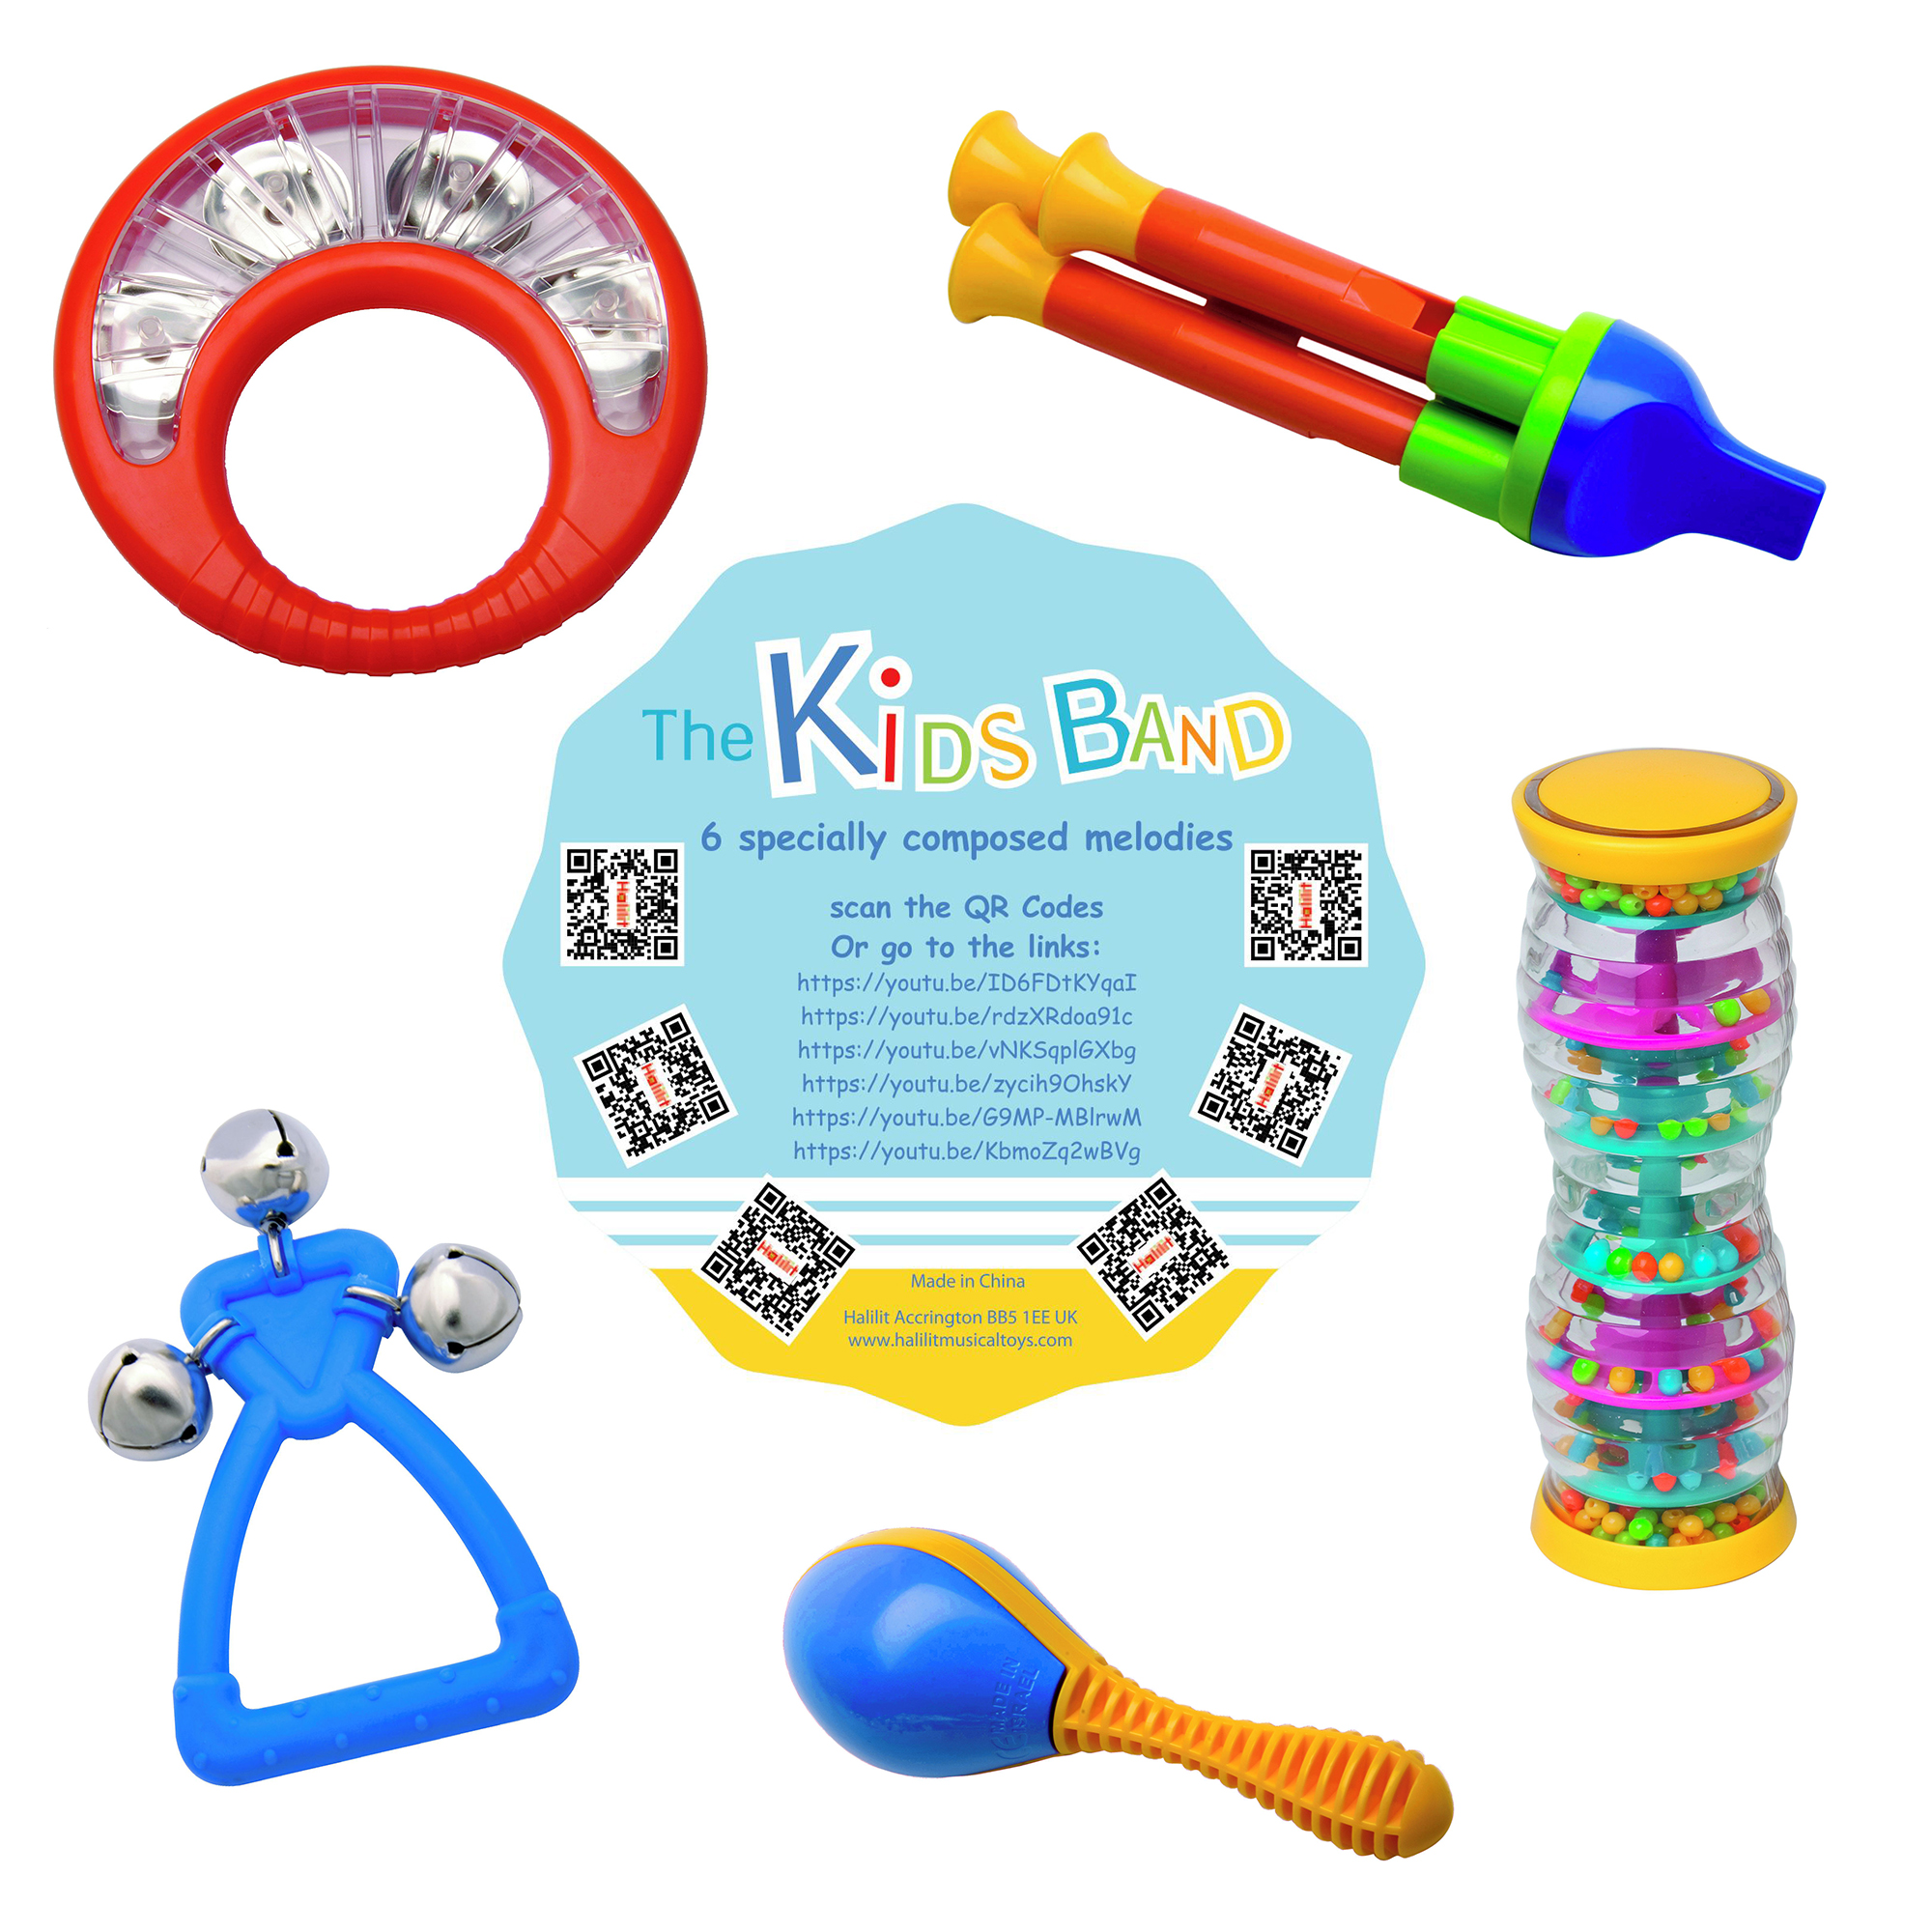 Halilit 6-Piece Kids Band Set